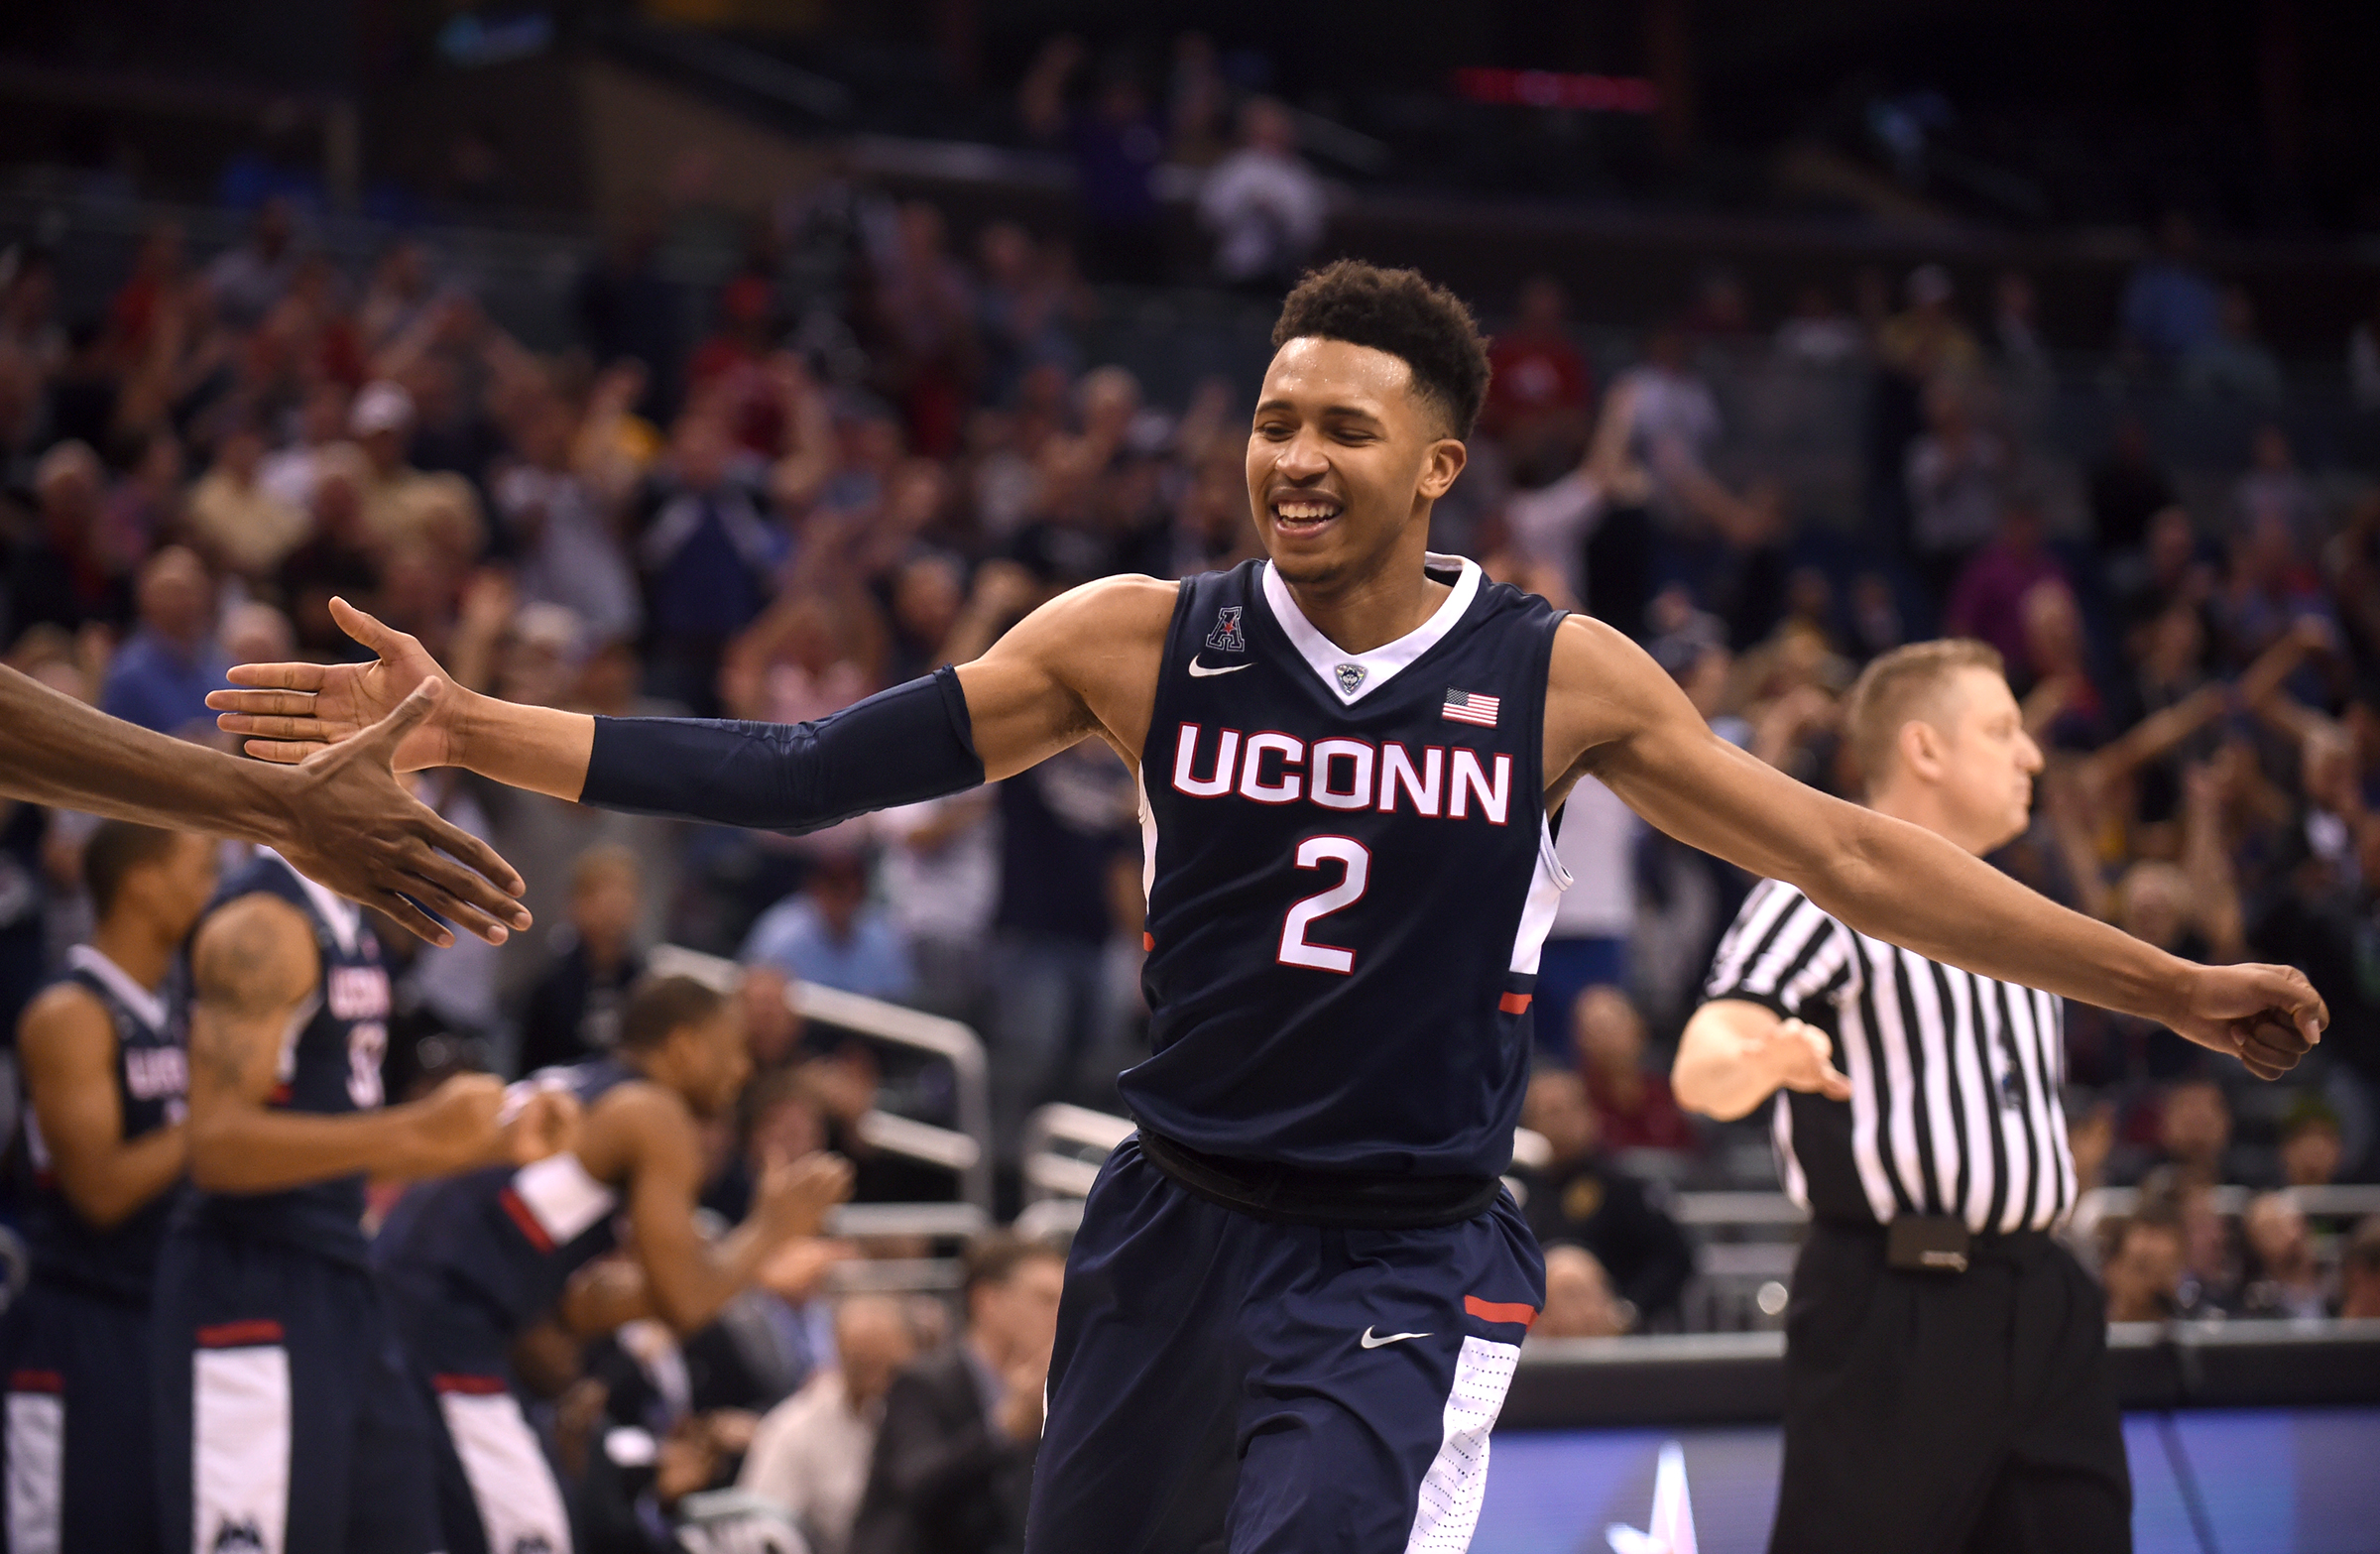 Connecticut guard Jalen Adams (2) celebrates a 3-pointer from half court at the end of the triple overtime to tie the NCAA college basketball game against Cincinnati in the quarterfinals of the American Athletic Conference men's tournament Friday, MArch 11, 2016, in Orlando, Fla. UConn won104-97 in quadruple overtime. (Brad Horrigan/Hartford Courant via AP) MANDATORY CREDIT